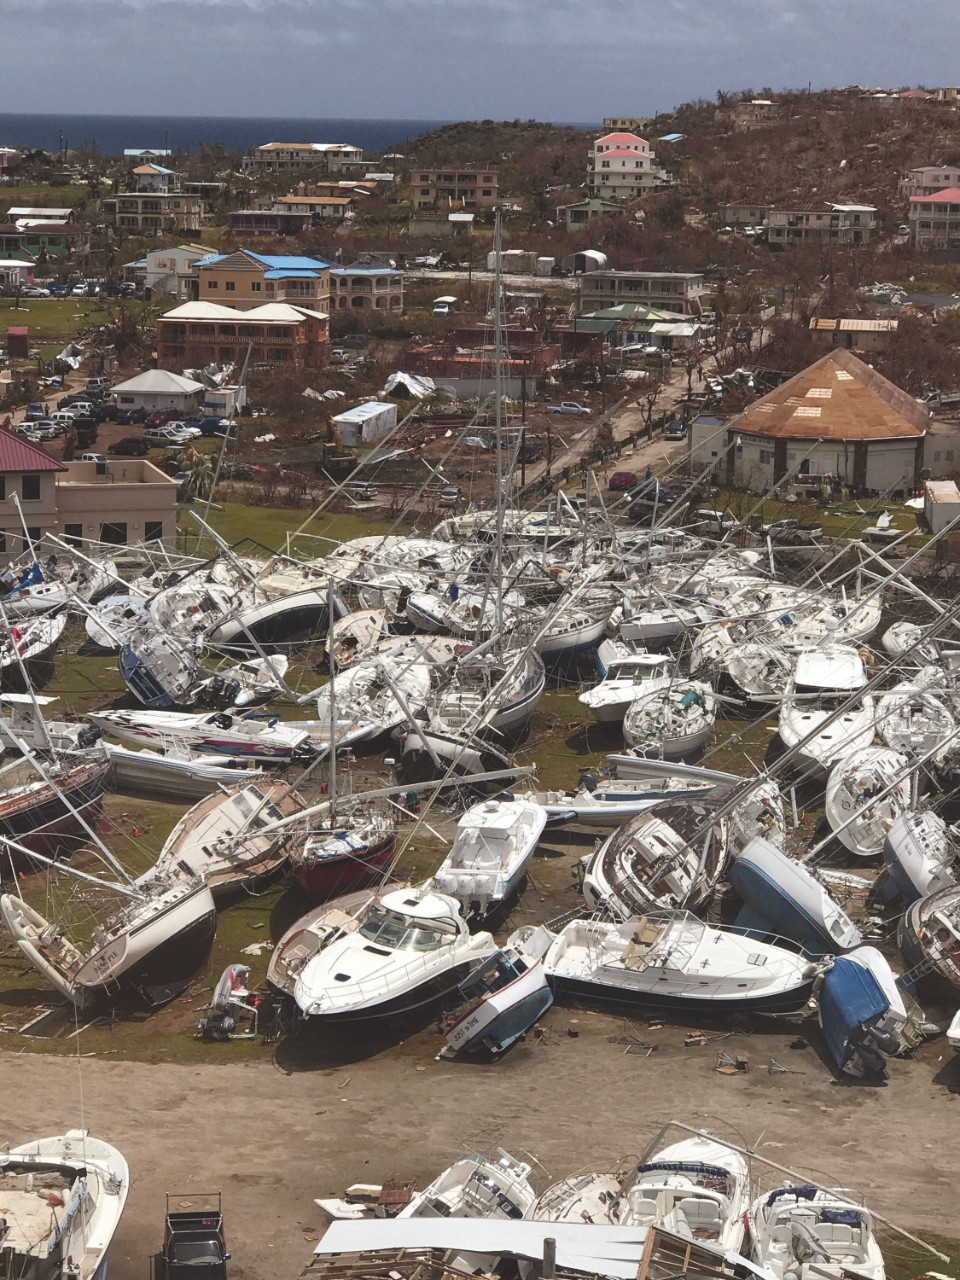 This Sept. 14, 2017 photo provided by Guillermo Houwer on Saturday, Sept. 16, shows some damaged boats at the Virgin Gorda Yacht Harbour in the aftermath of Hurricane Irma on Virgin Gorda, in the British Virgin Islands. (Guillermo Houwer via AP) ORG XMIT: UGC143